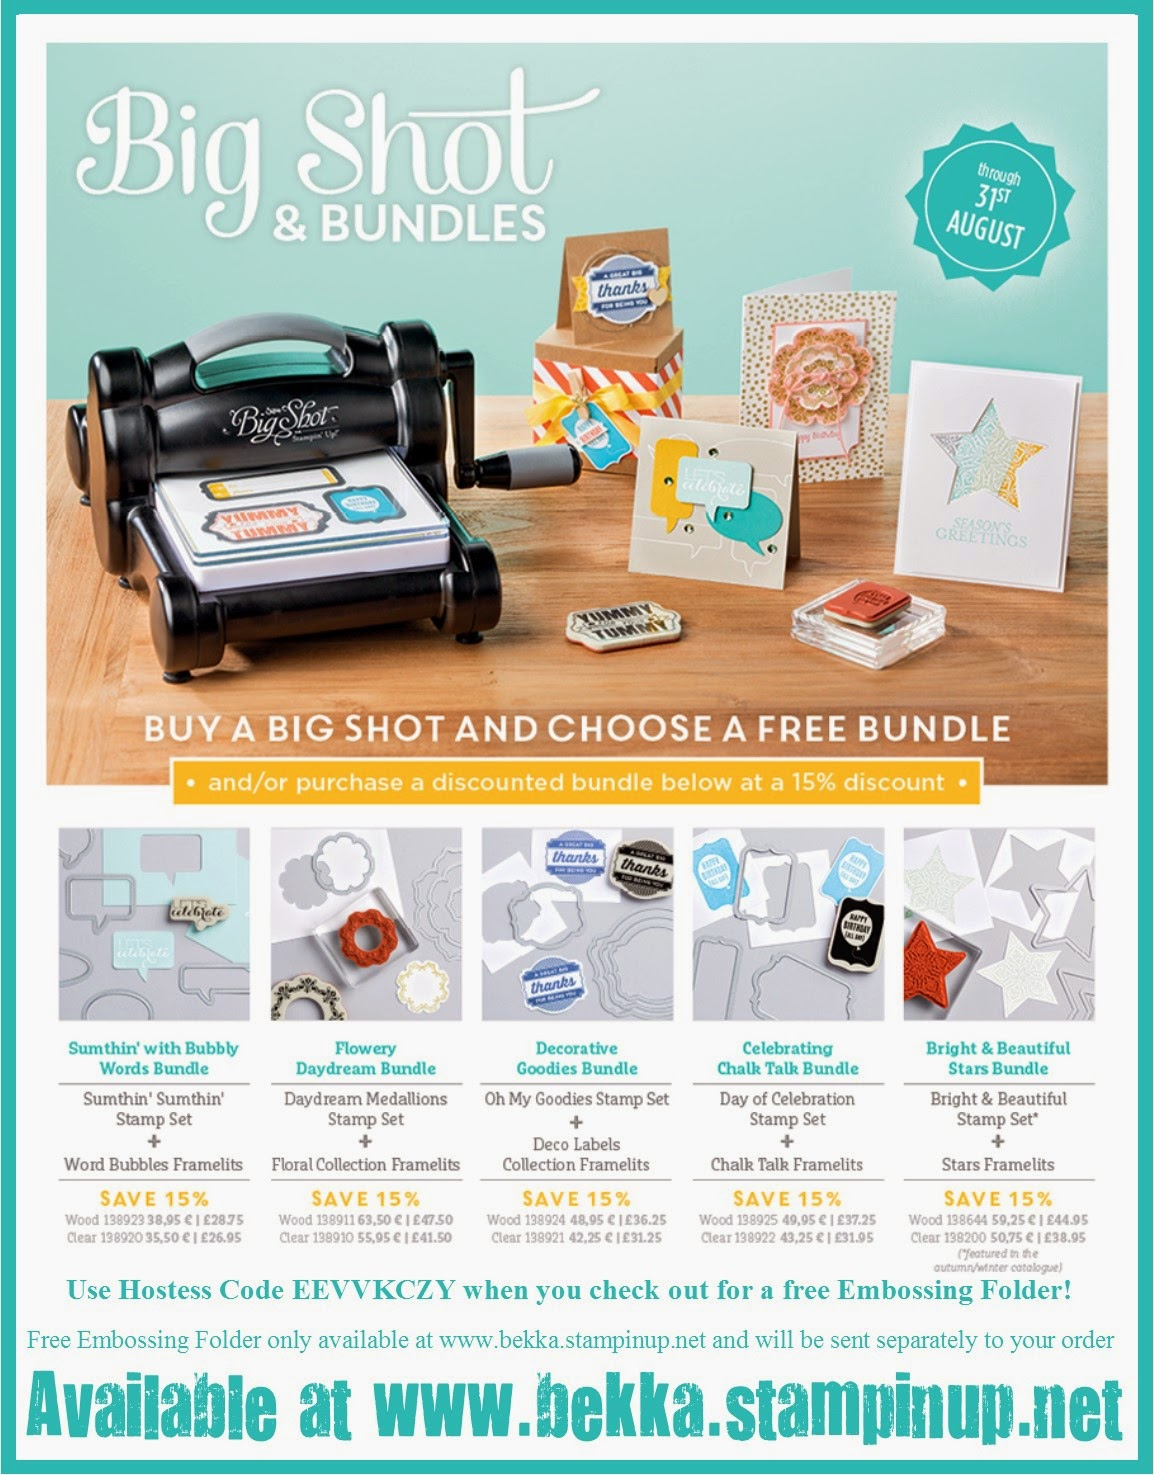 Big Shot and Bundle Offers for August 2014 at www.bekka.stampinup.net